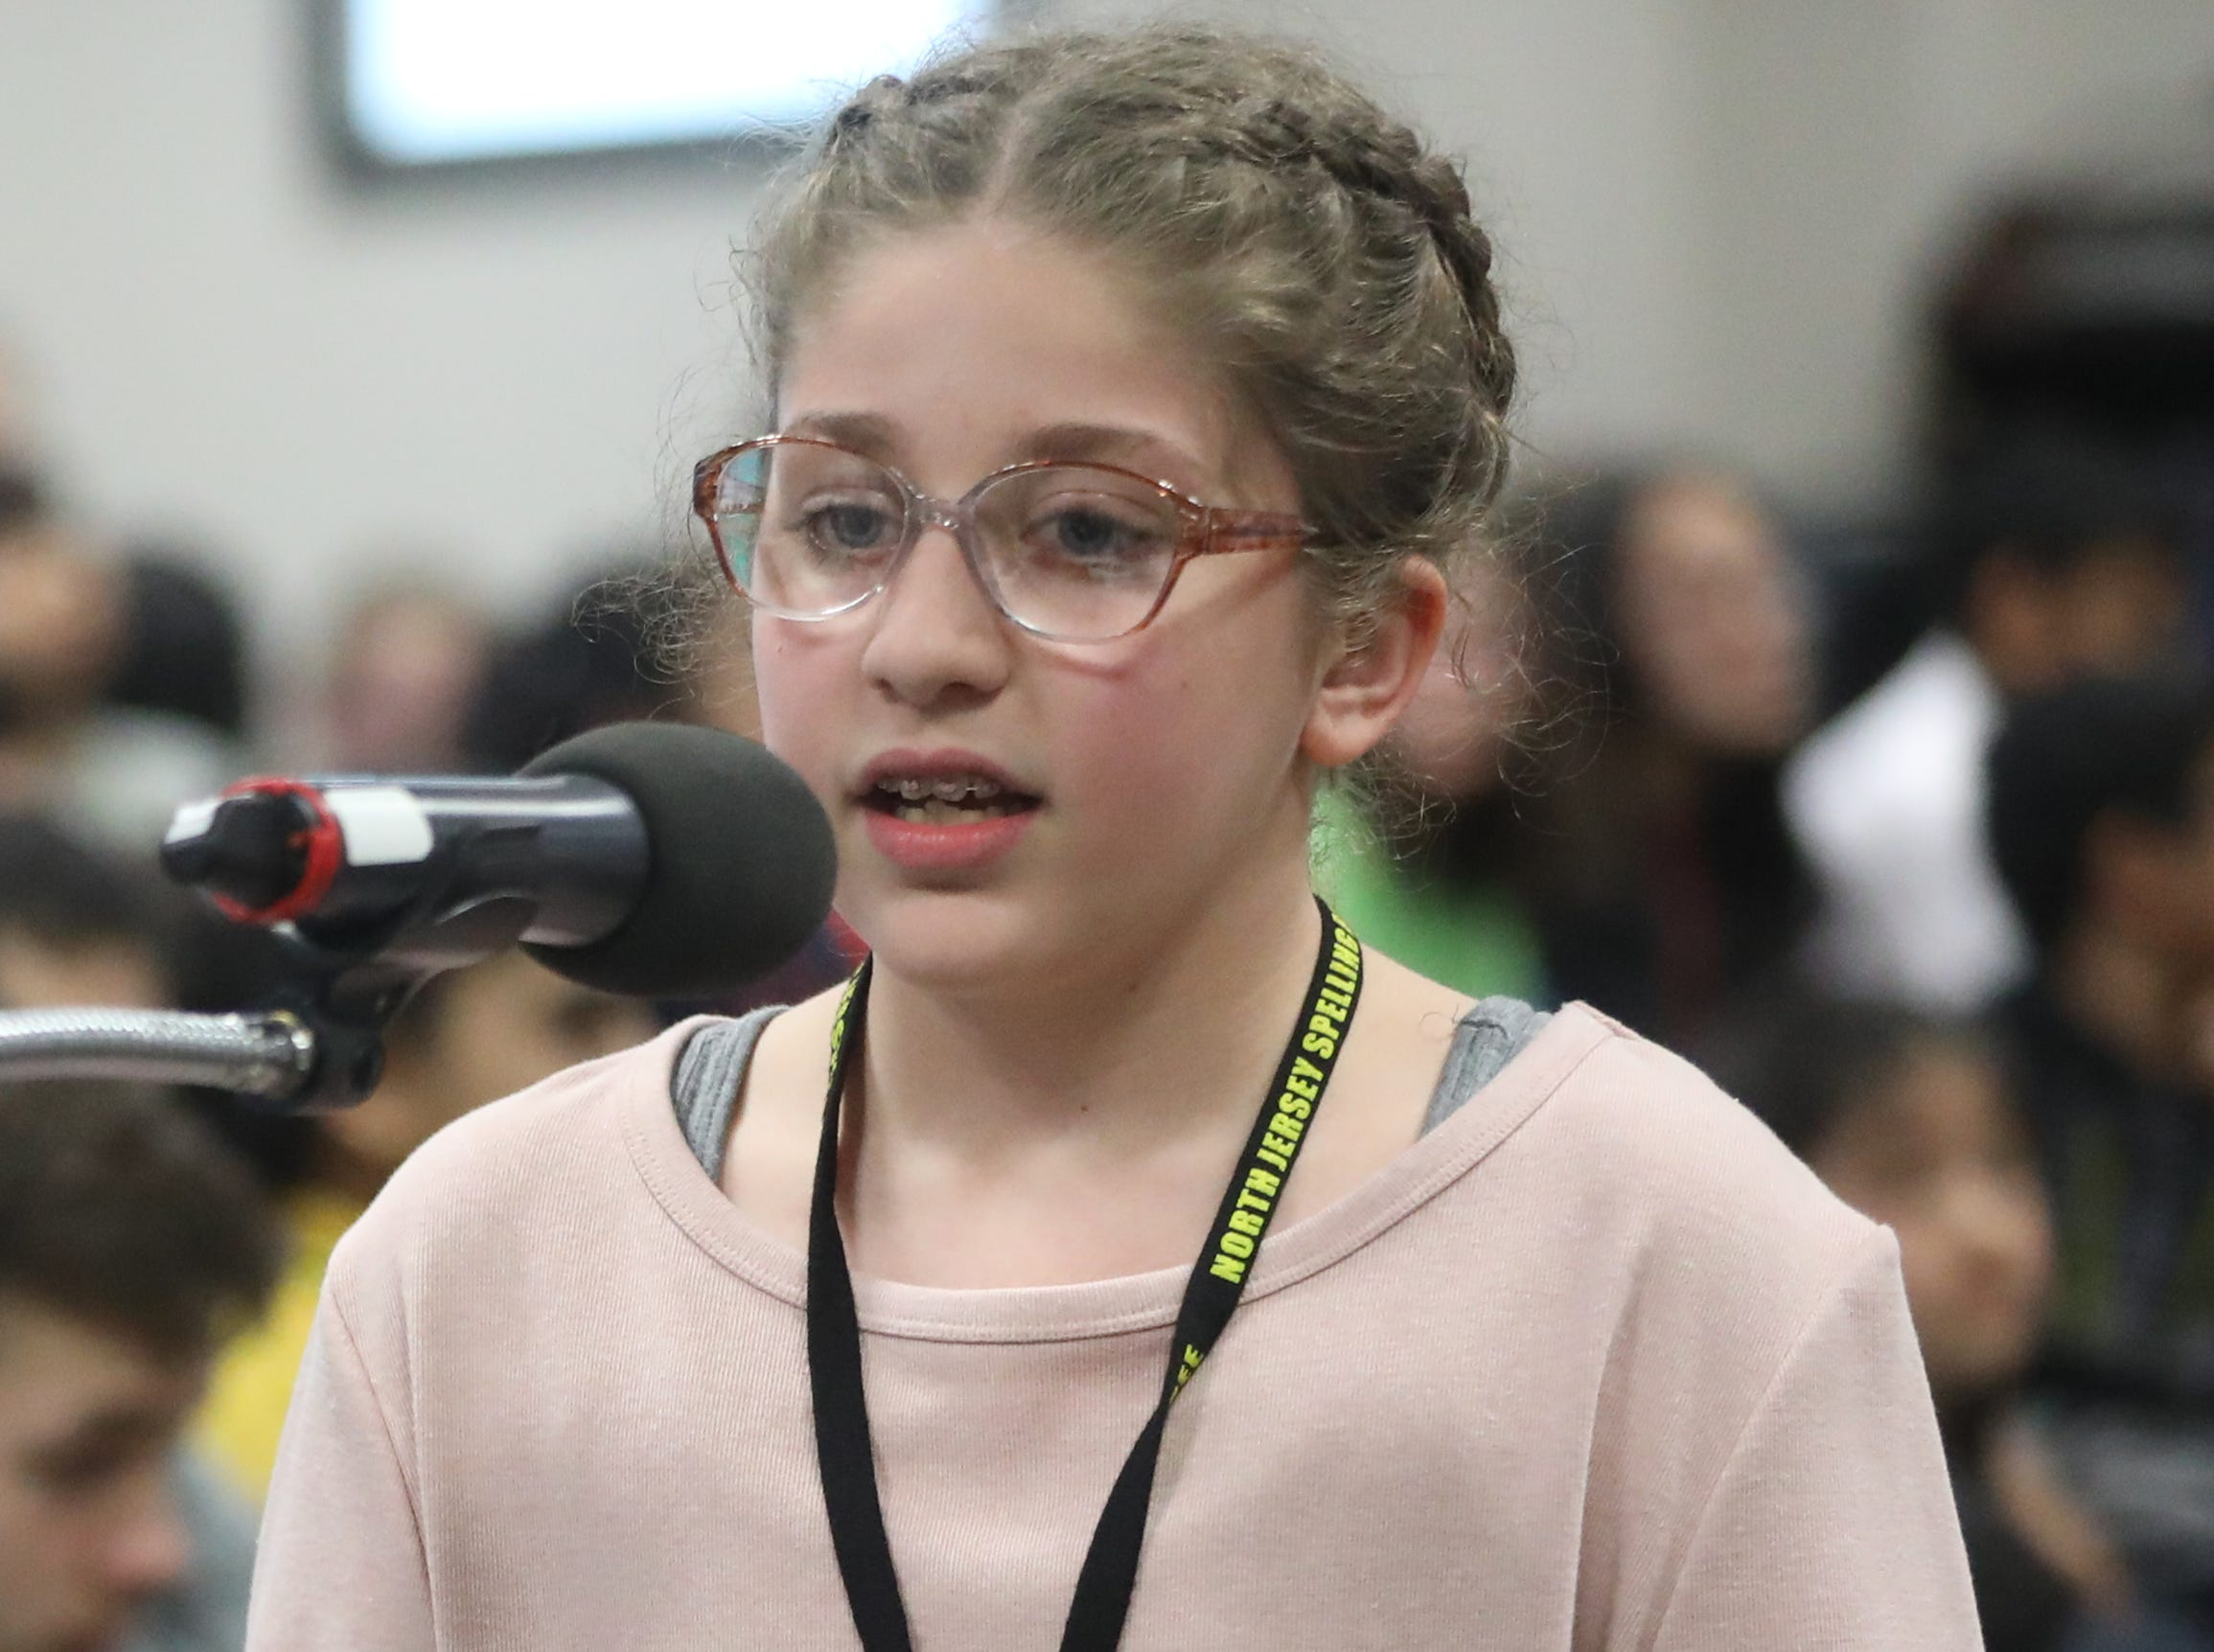 Jenan Hassan, of Cliffside Park, competes in the first round of the 2019 North Jersey Spelling Bee, in Paramus. Thursday, March 14, 2019